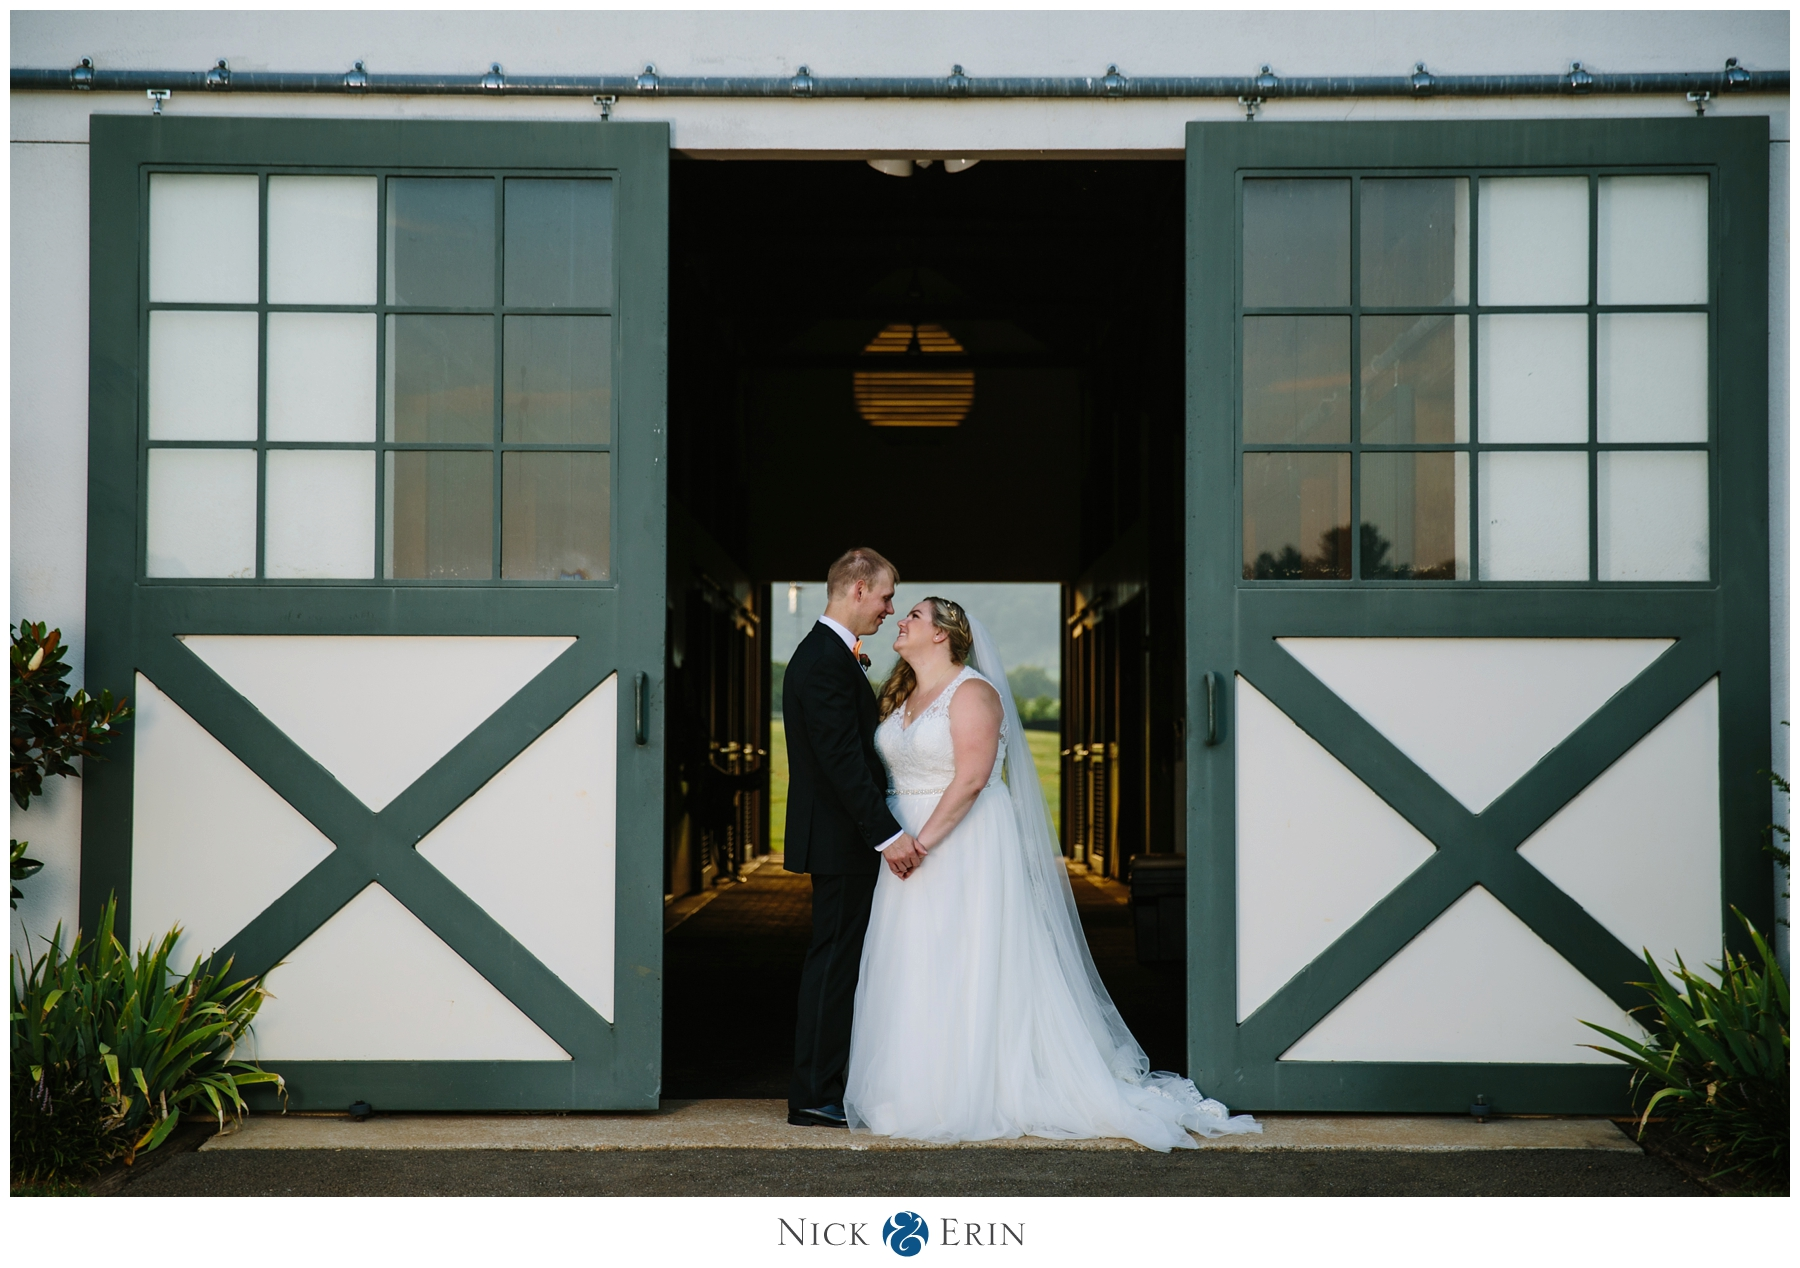 Donner_Photography_Charlottesville Virginia Wedding_Jennifer & Chris_0007